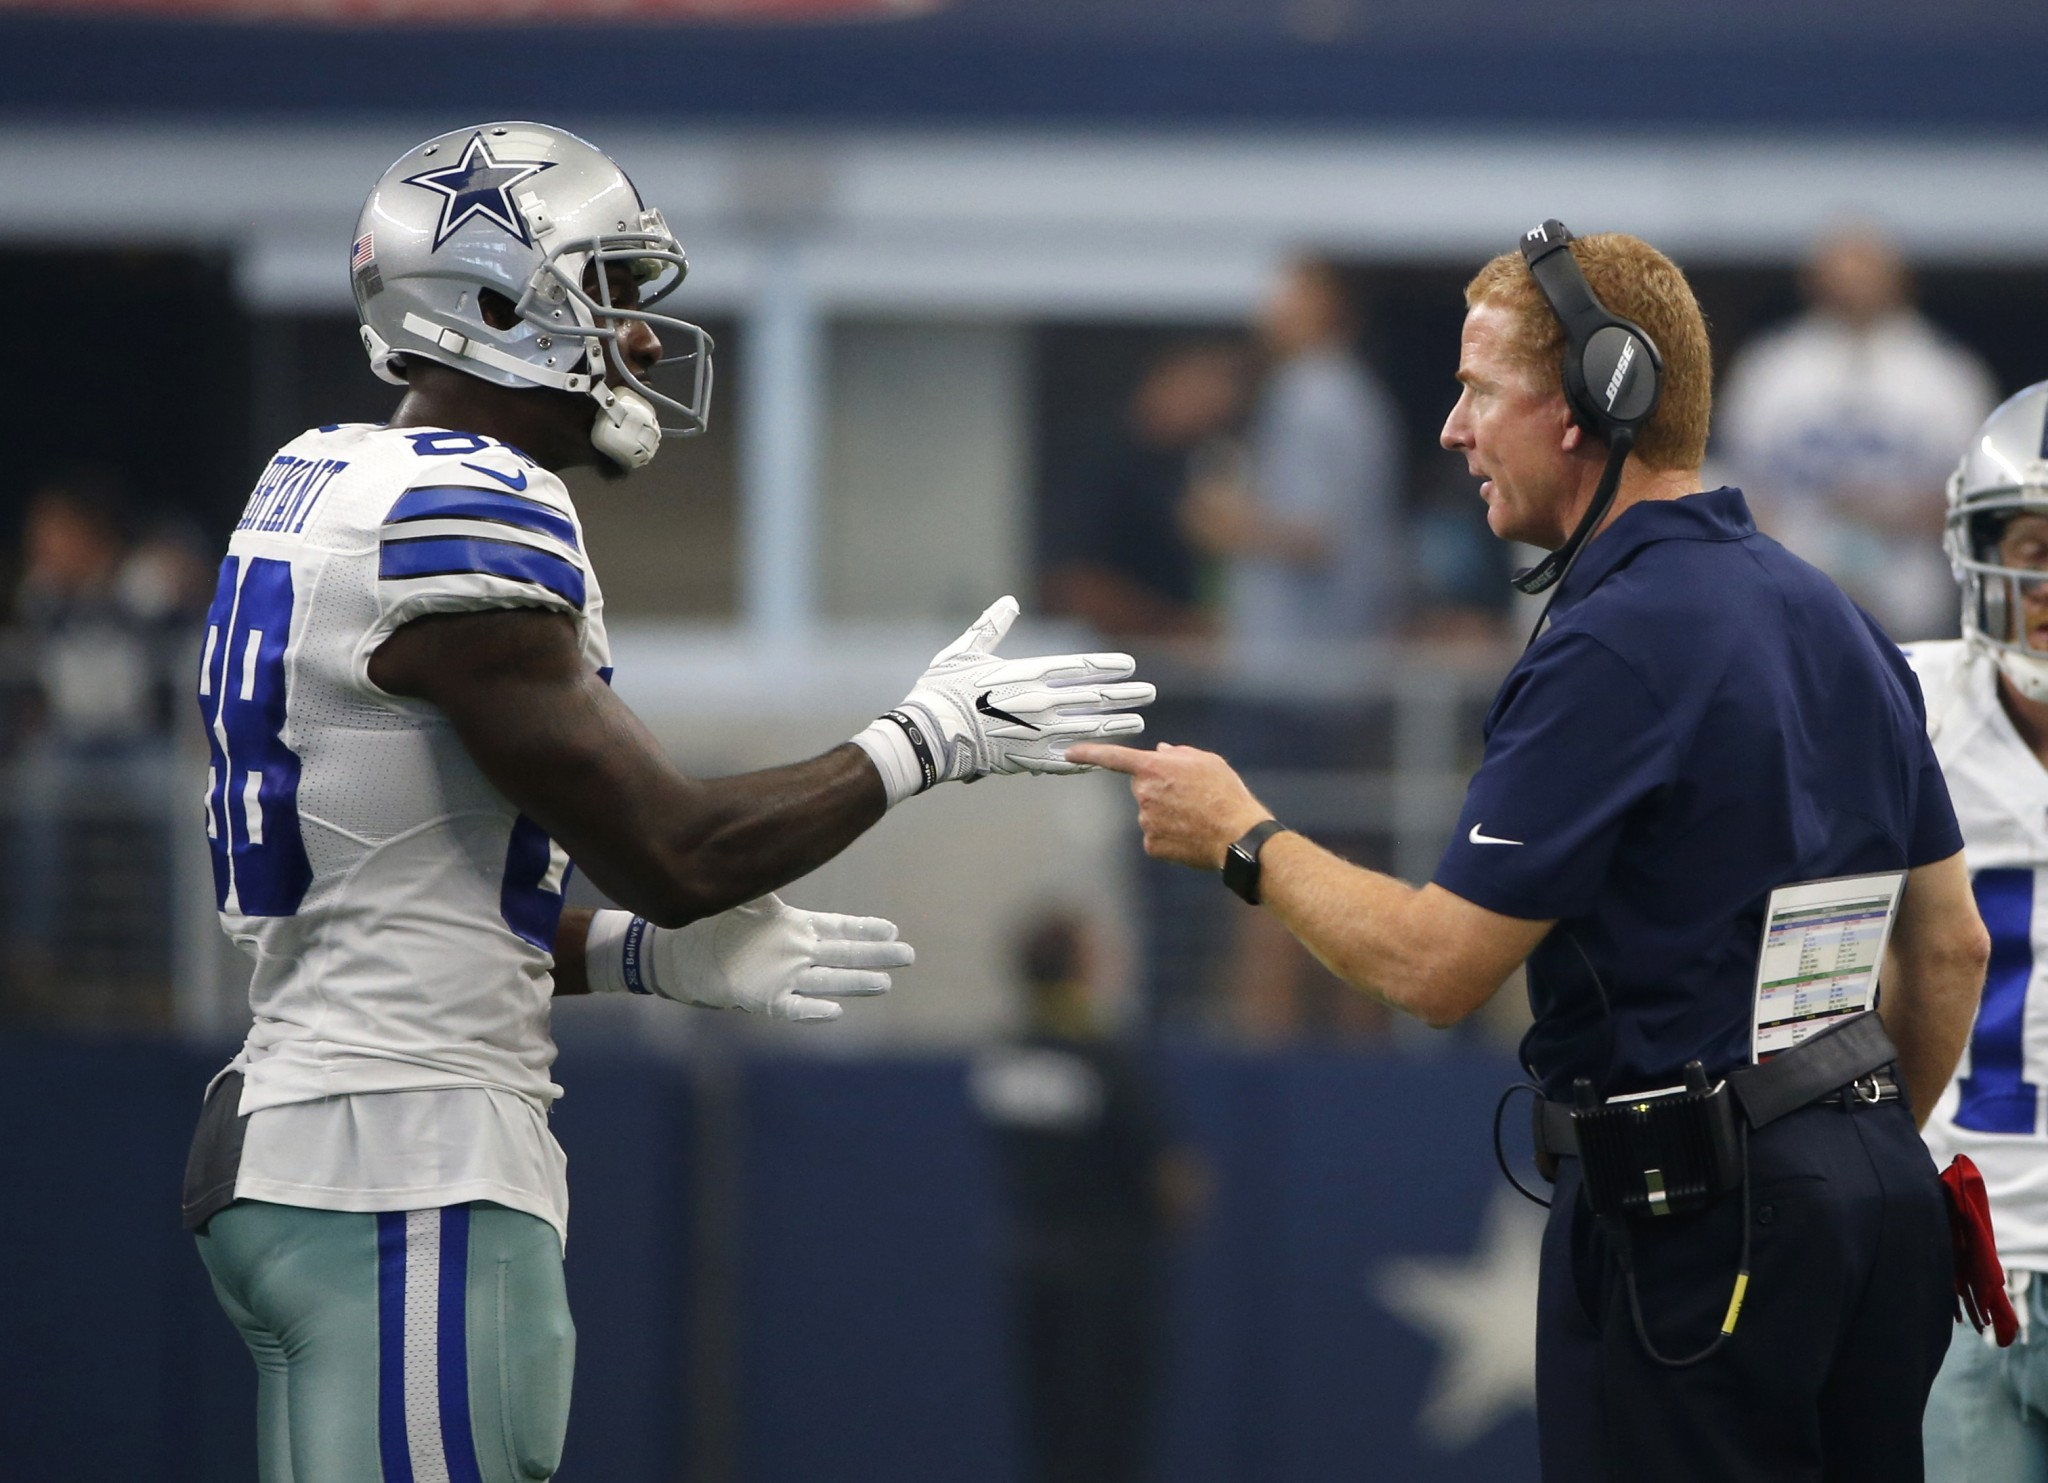 Dez Bryant said he sliced finger cutting carrots in 'extremely …